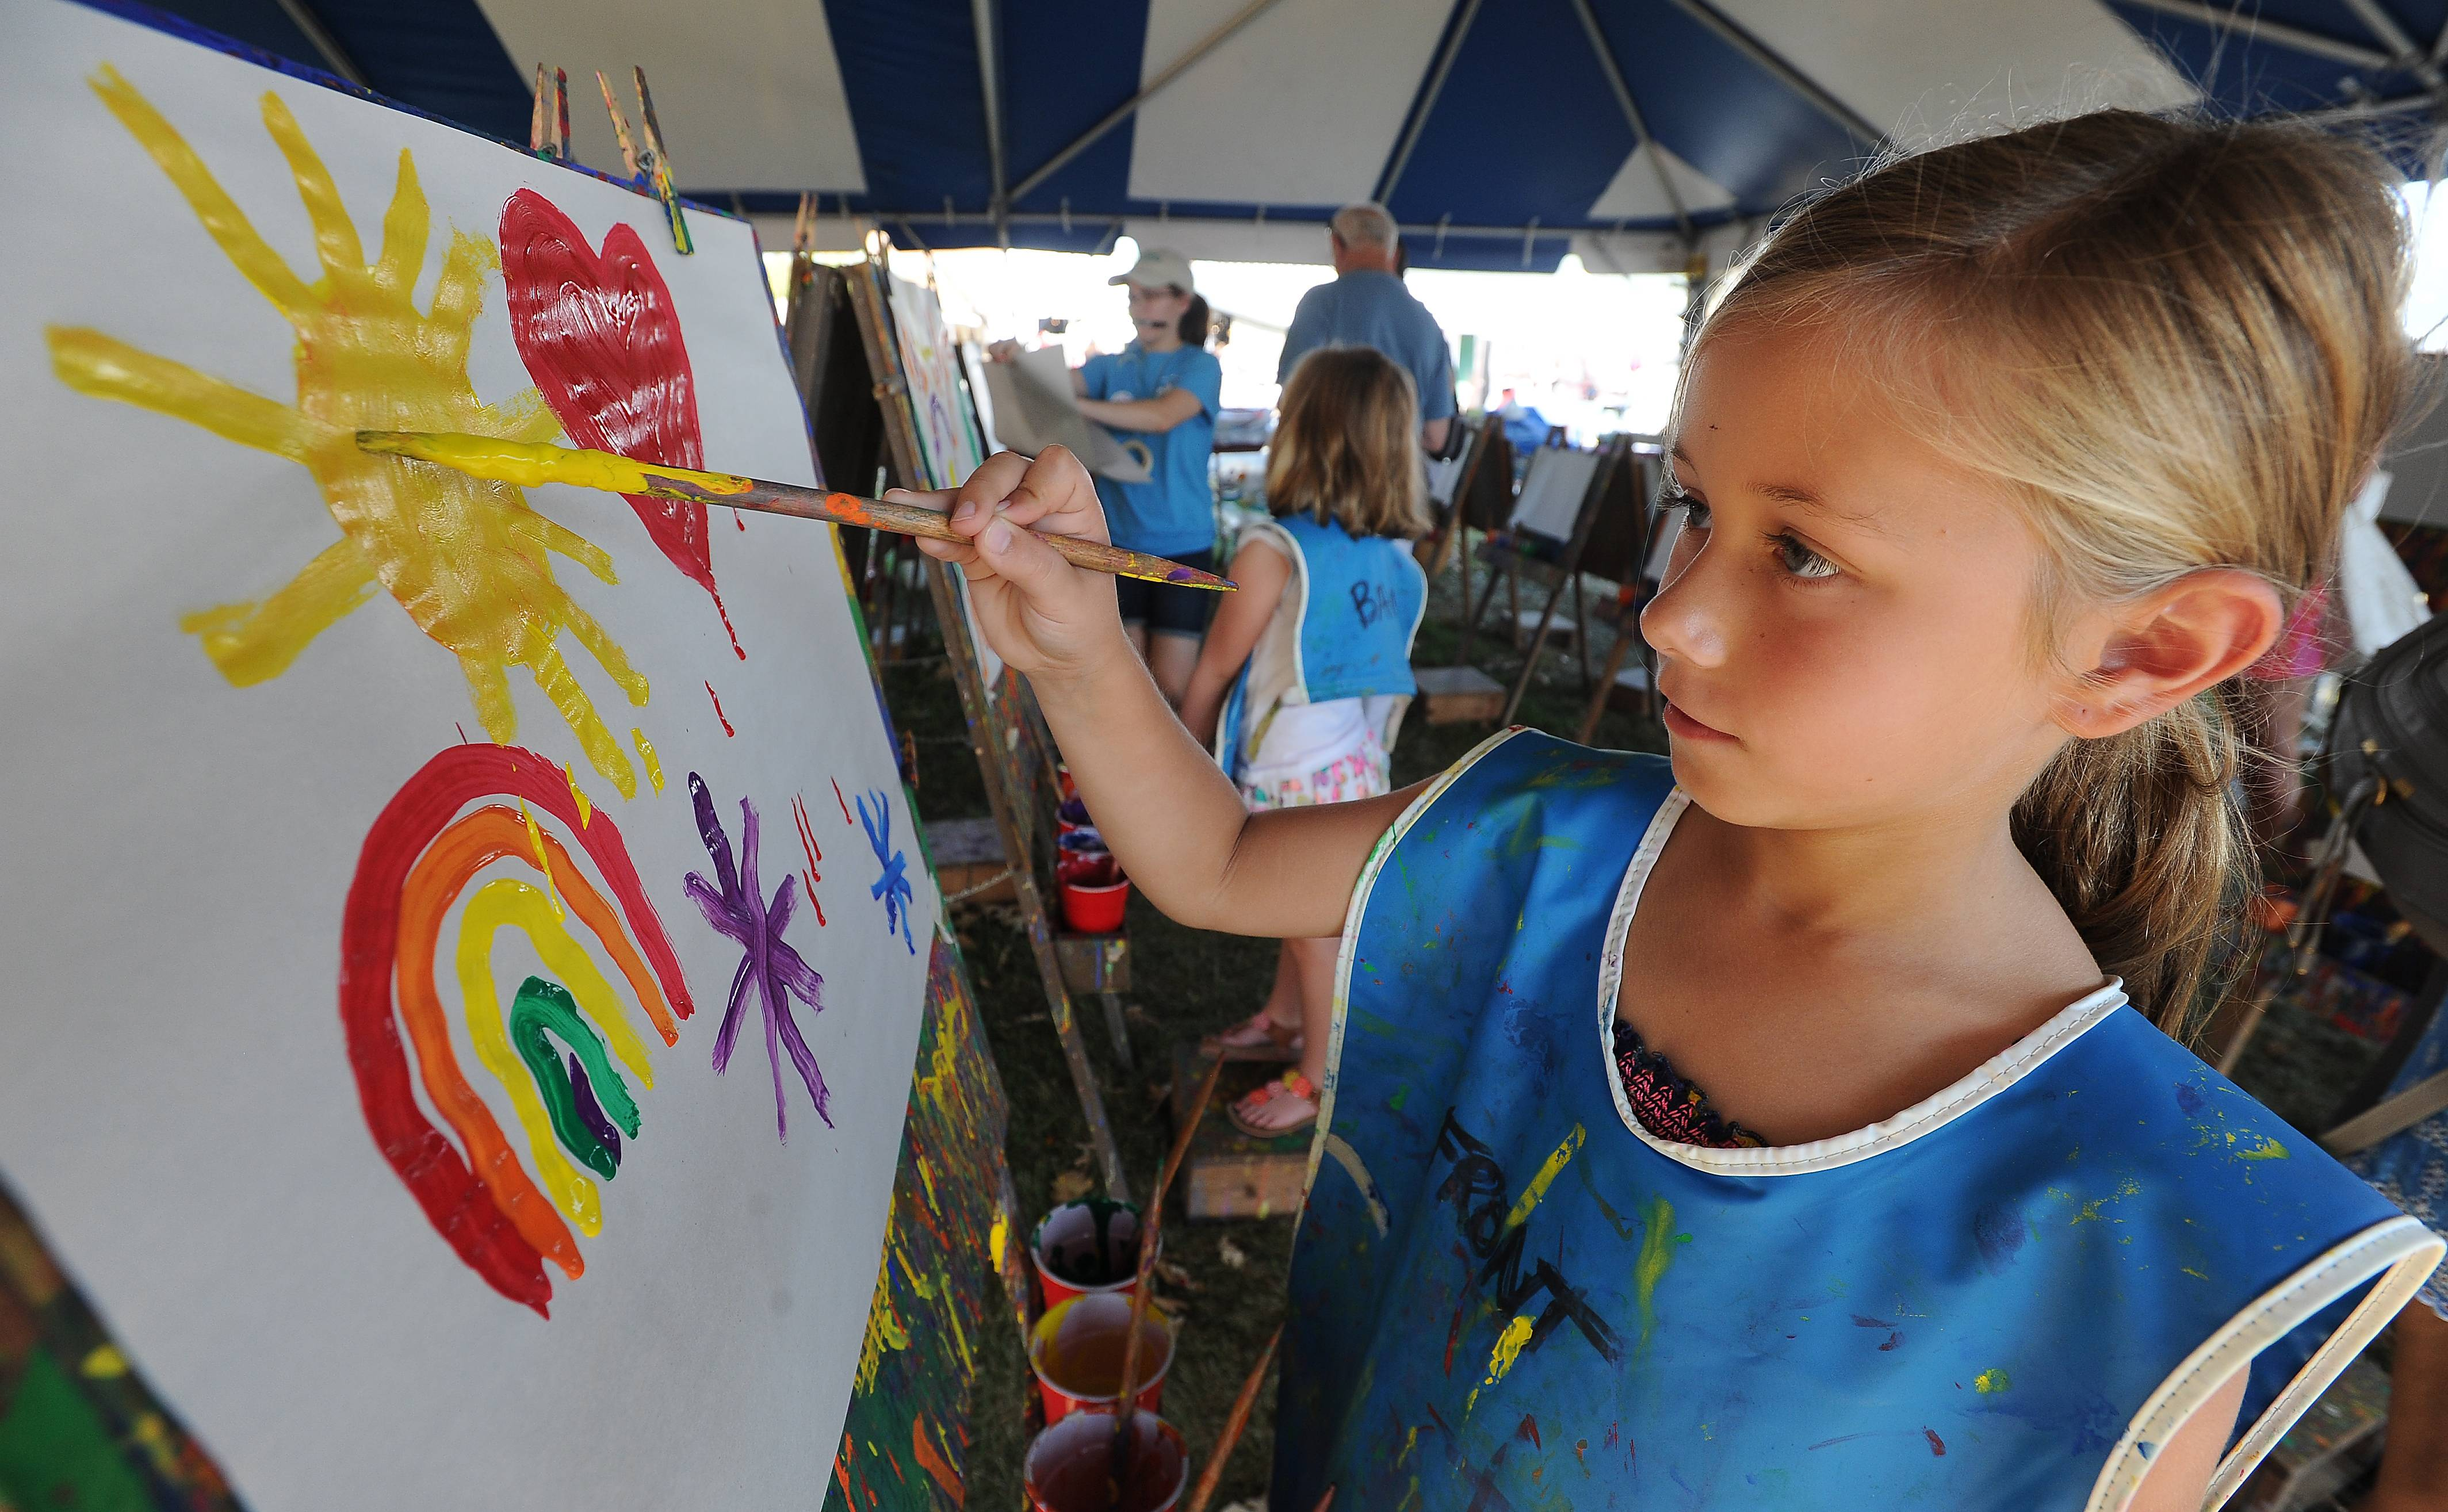 Kids can create their own masterpiece at the Art in the Barn fine art festival on the grounds of Advocate Good Shepherd Hospital.